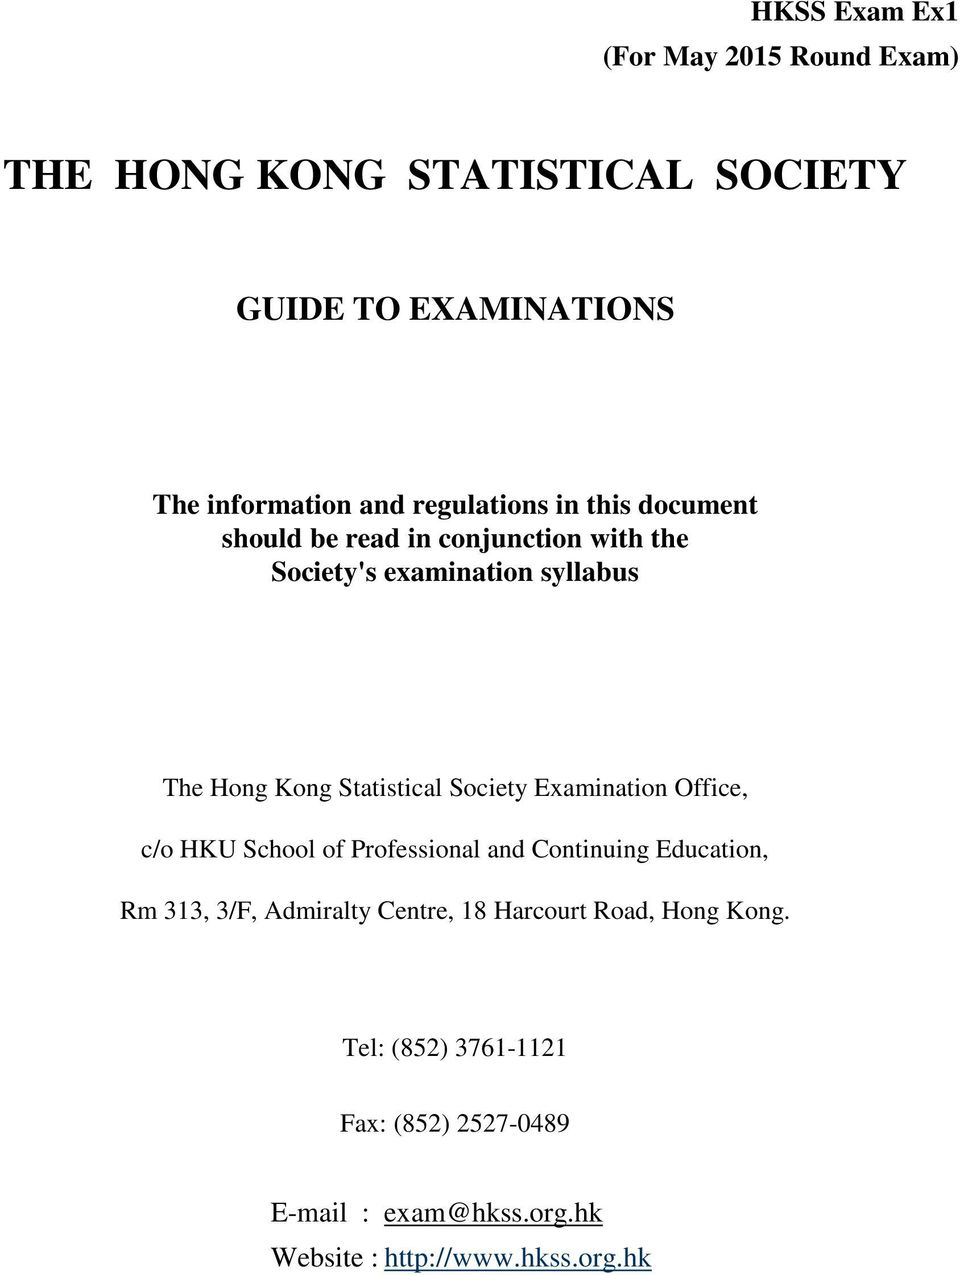 Statistical Society Examination Office, c/o HKU School of Professional and Continuing Education, Rm 313, 3/F, Admiralty